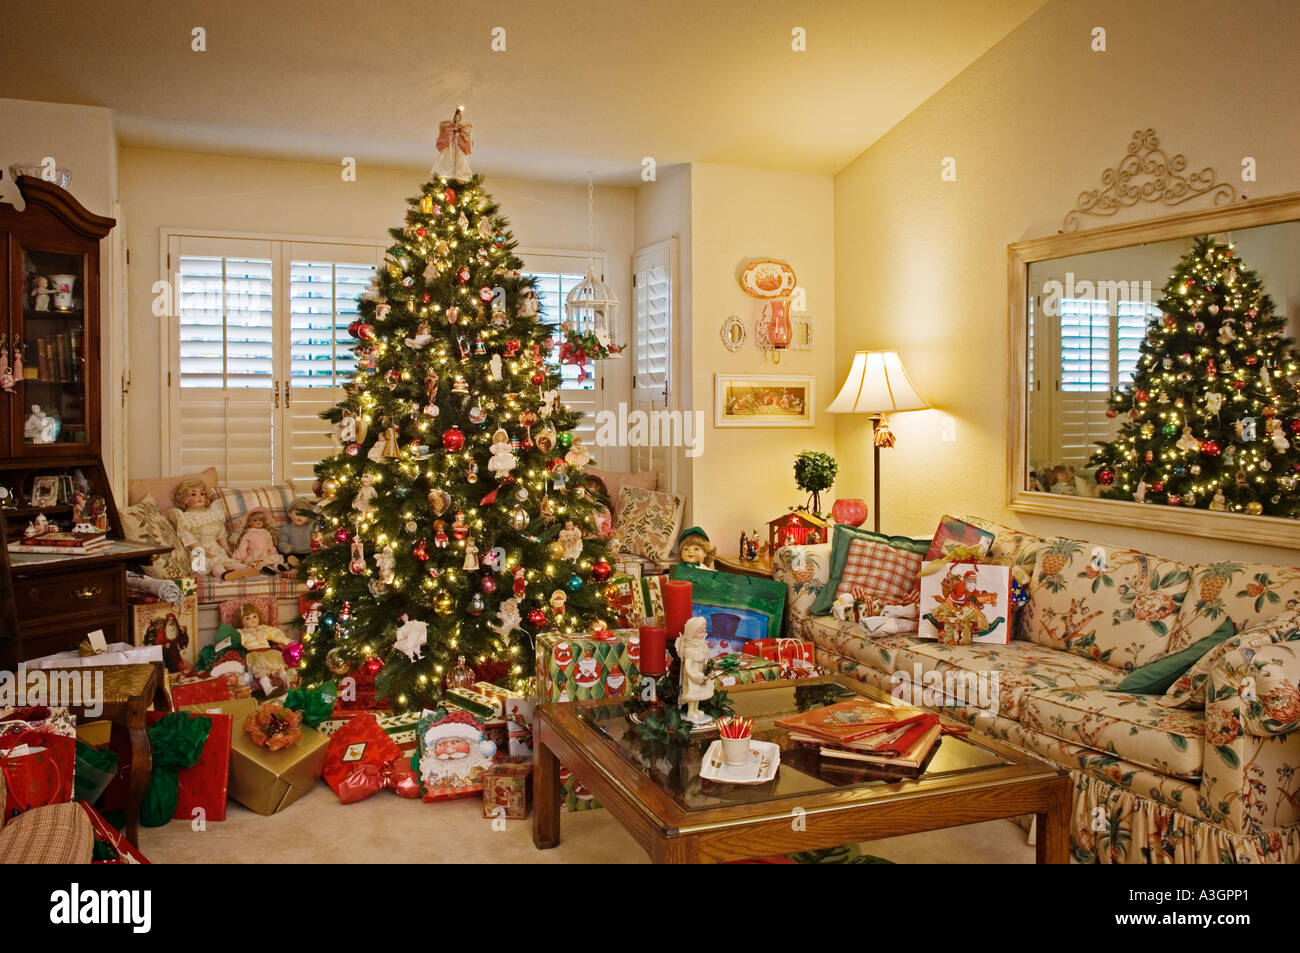 Christmas tree decorations and gifts in living room of - Christmas decoration in living room ...